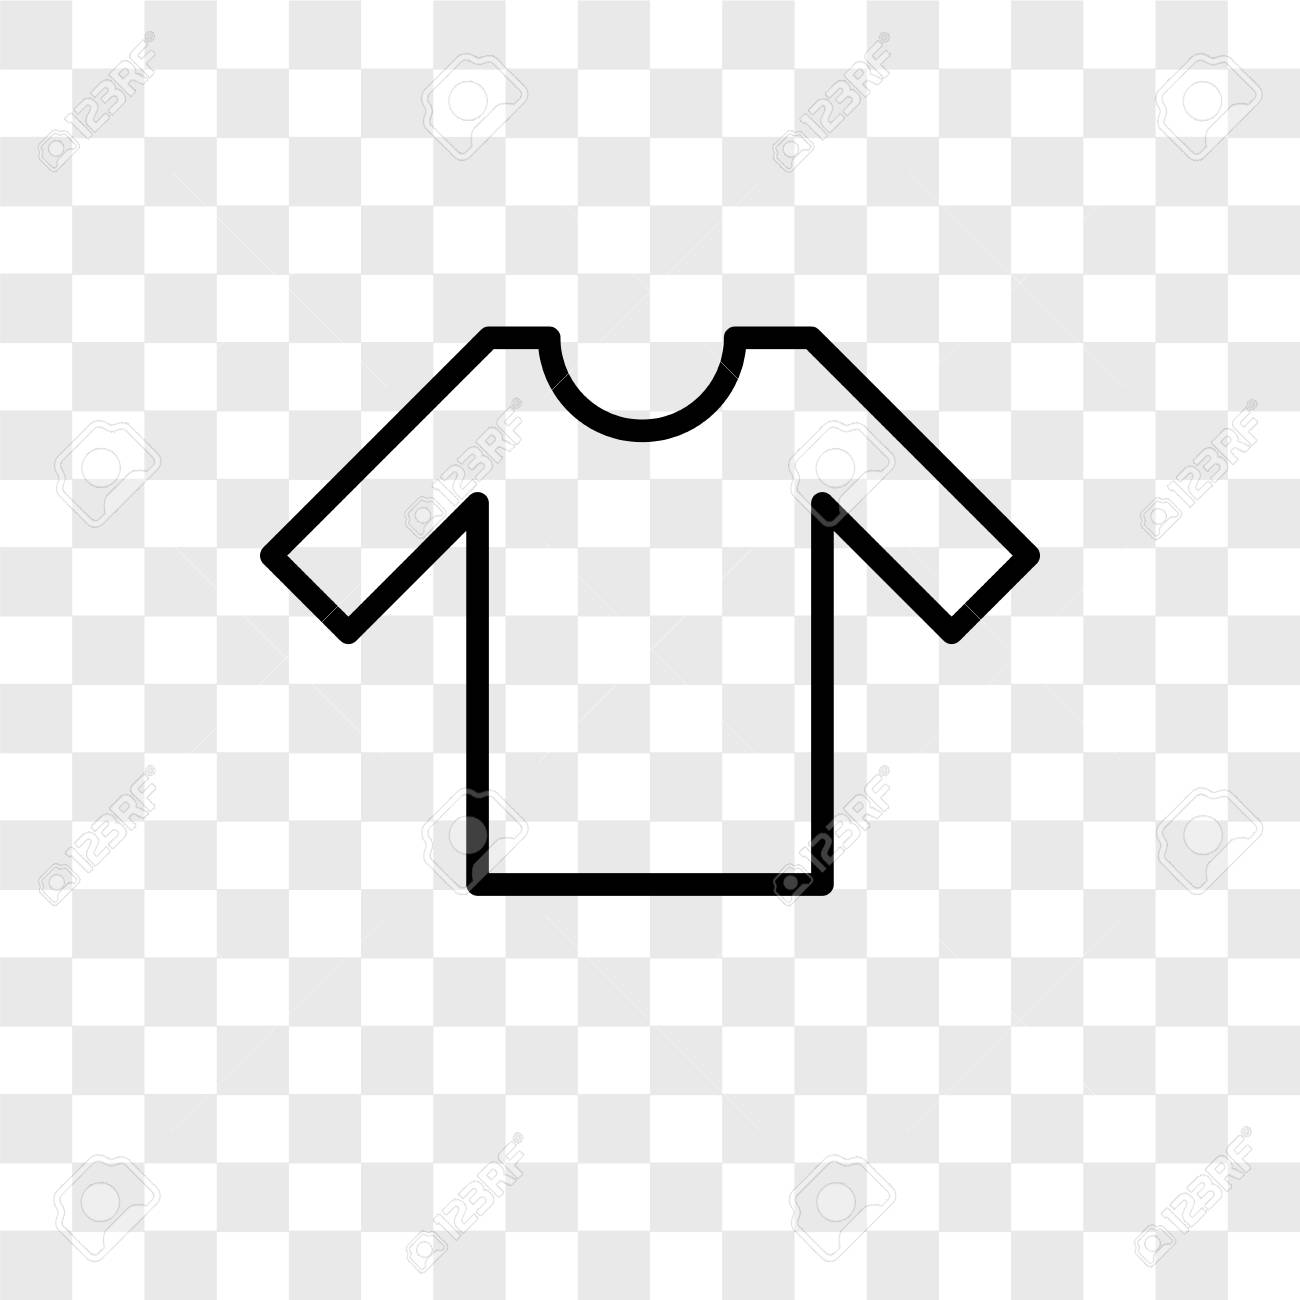 shirt vector icon isolated on transparent background shirt logo royalty free cliparts vectors and stock illustration image 107699931 shirt vector icon isolated on transparent background shirt logo